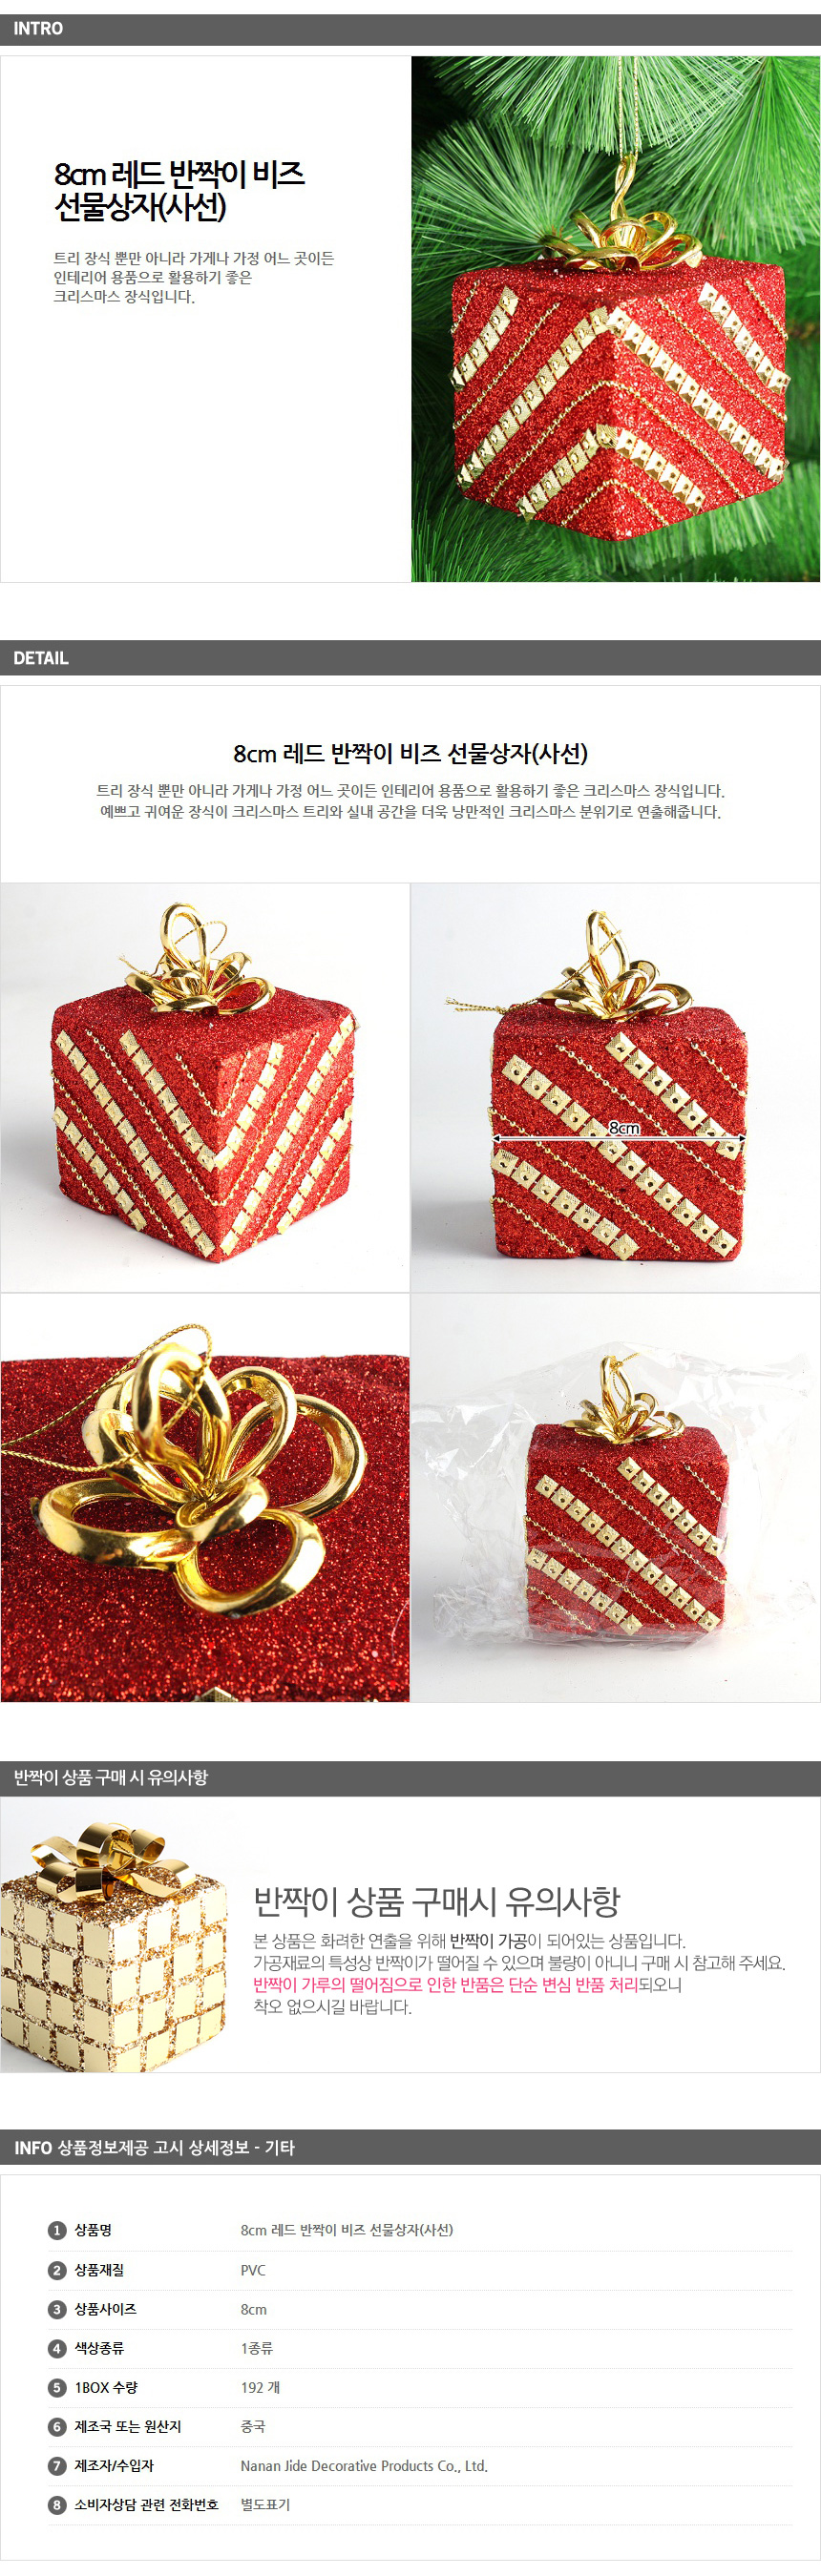 [ WINEQOK ] Christmas Goods / Red velvet shiny beads gift box oblique